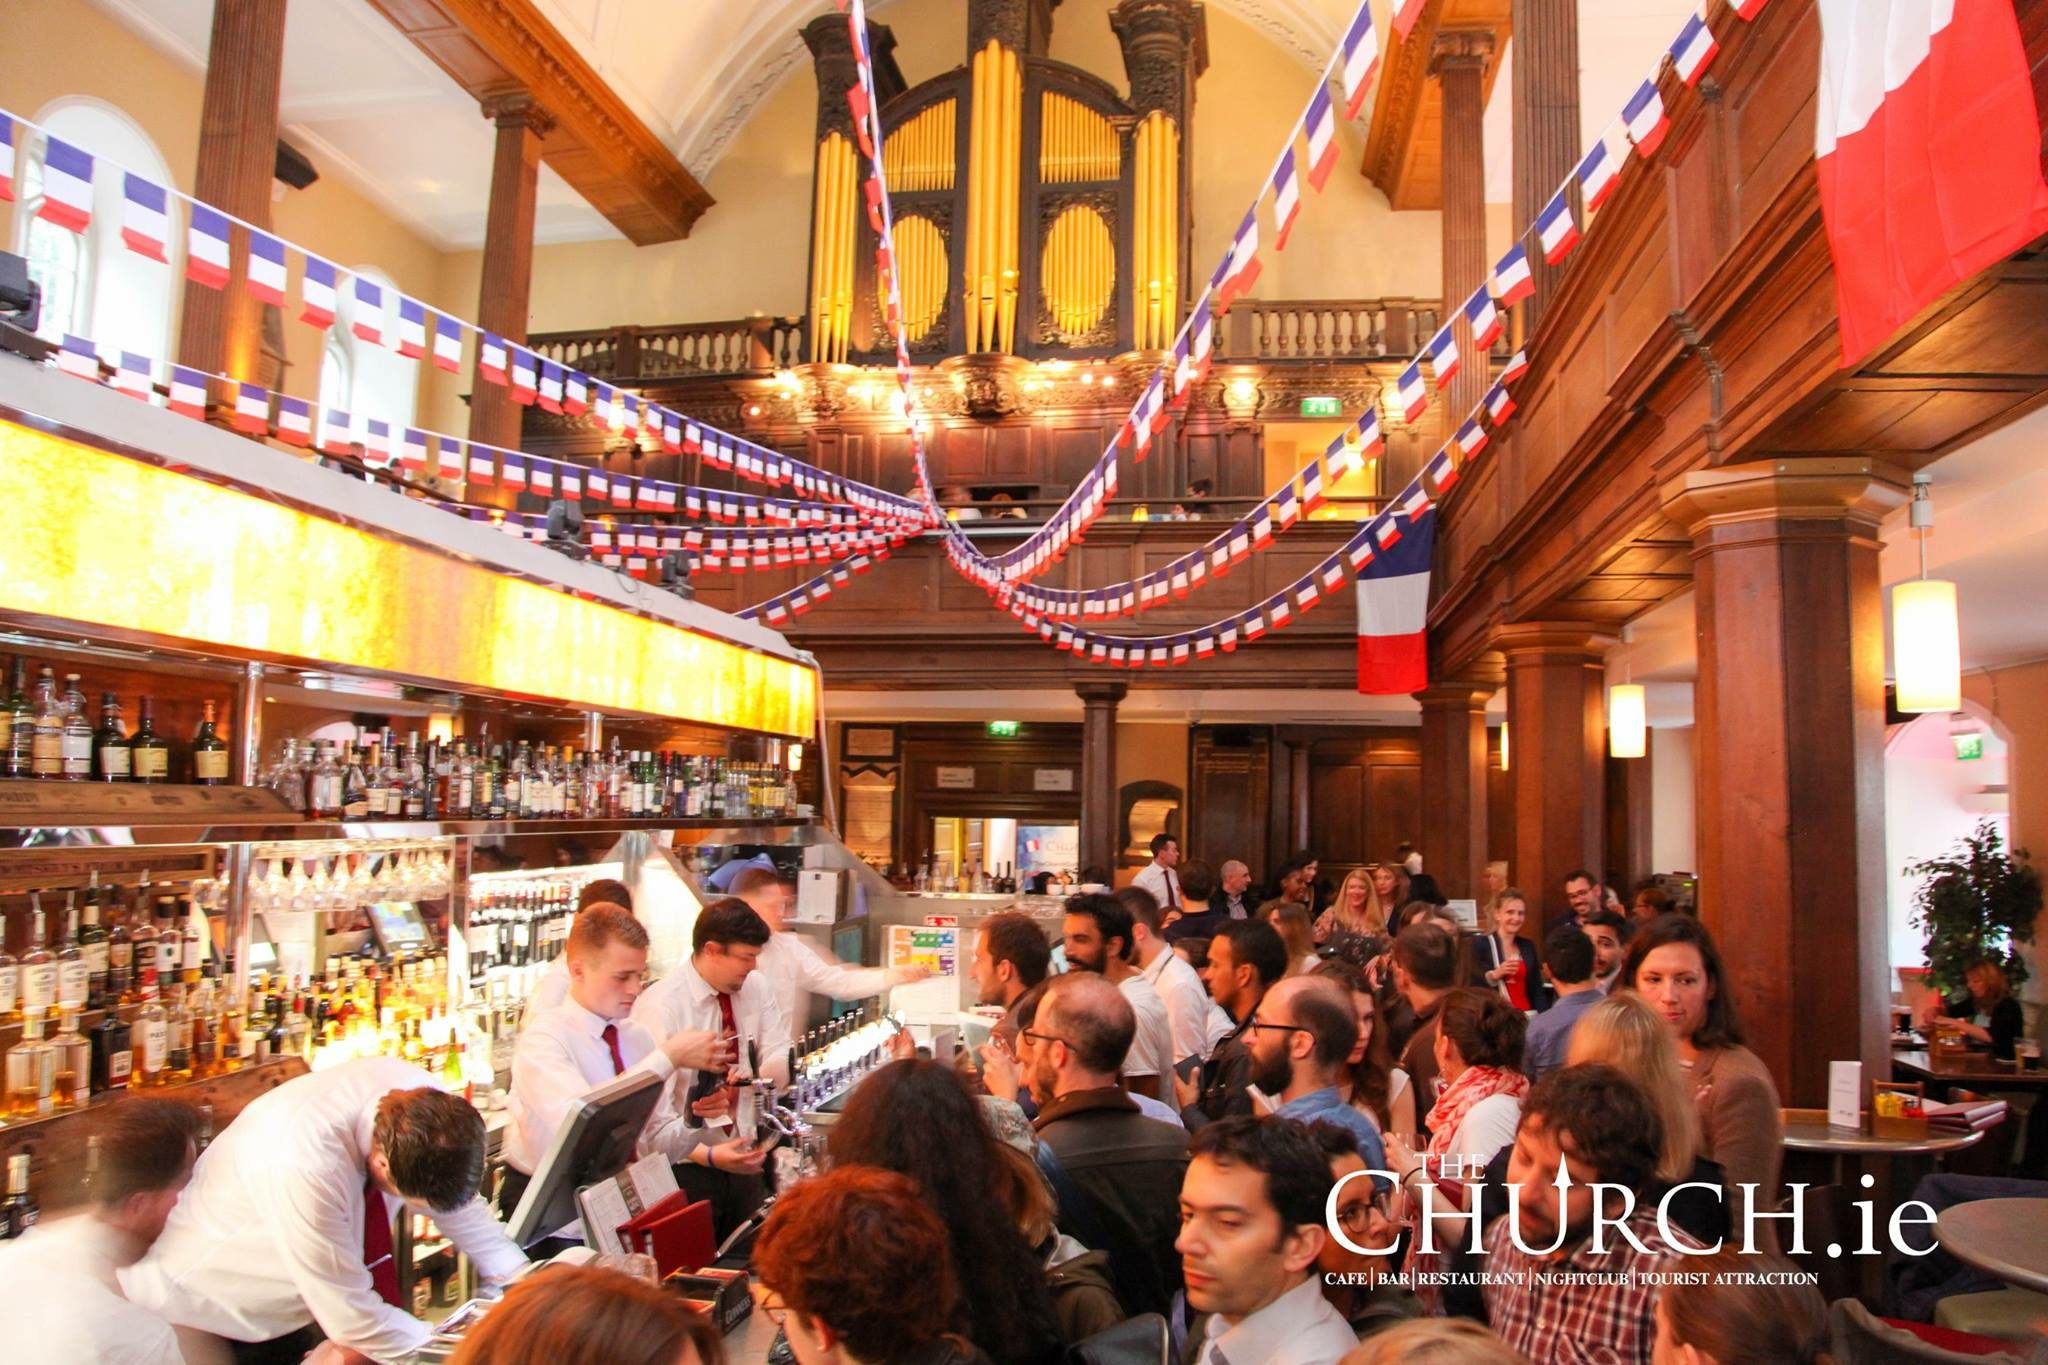 Celebrate Bastille Day at The Church Bar and Restaurant